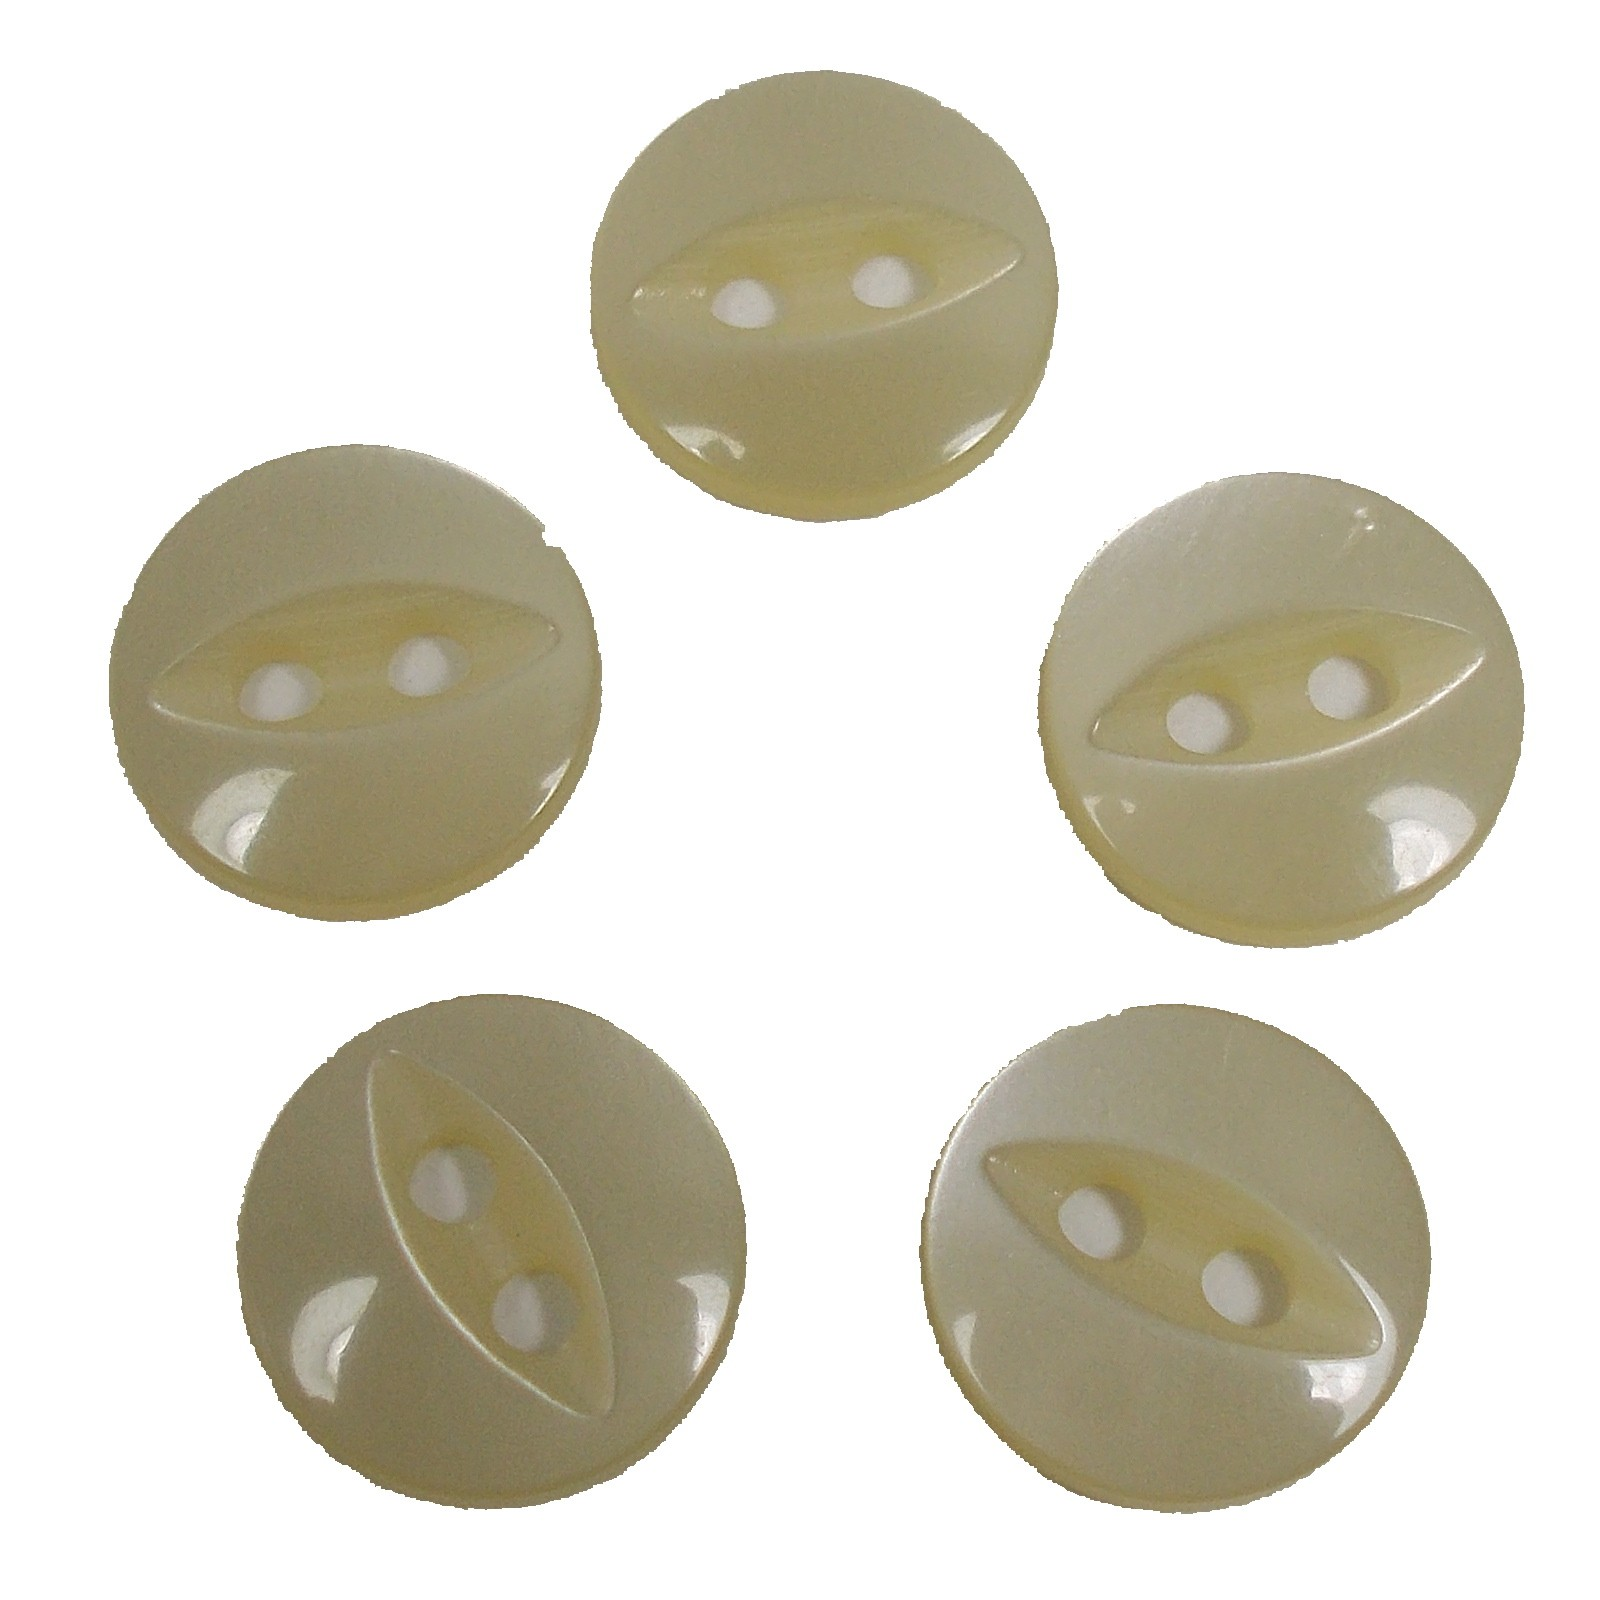 Fisheye Basic Buttons 11mm Ivory Pack of 5